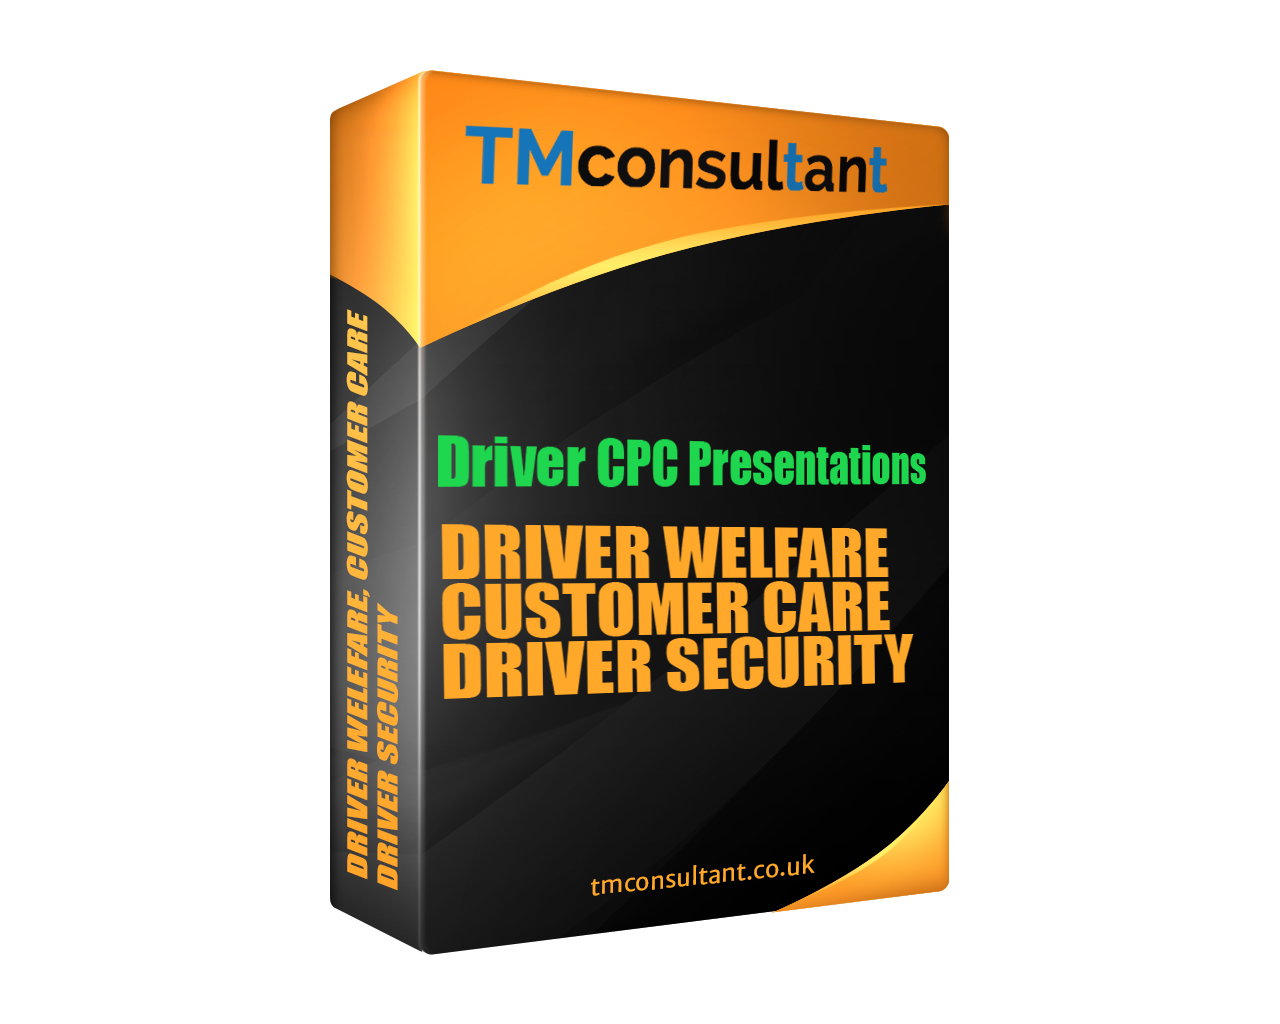 driver cpc presentations DRIVER WELFARE CUSTOMER CARE AND DRIVER SECURITY